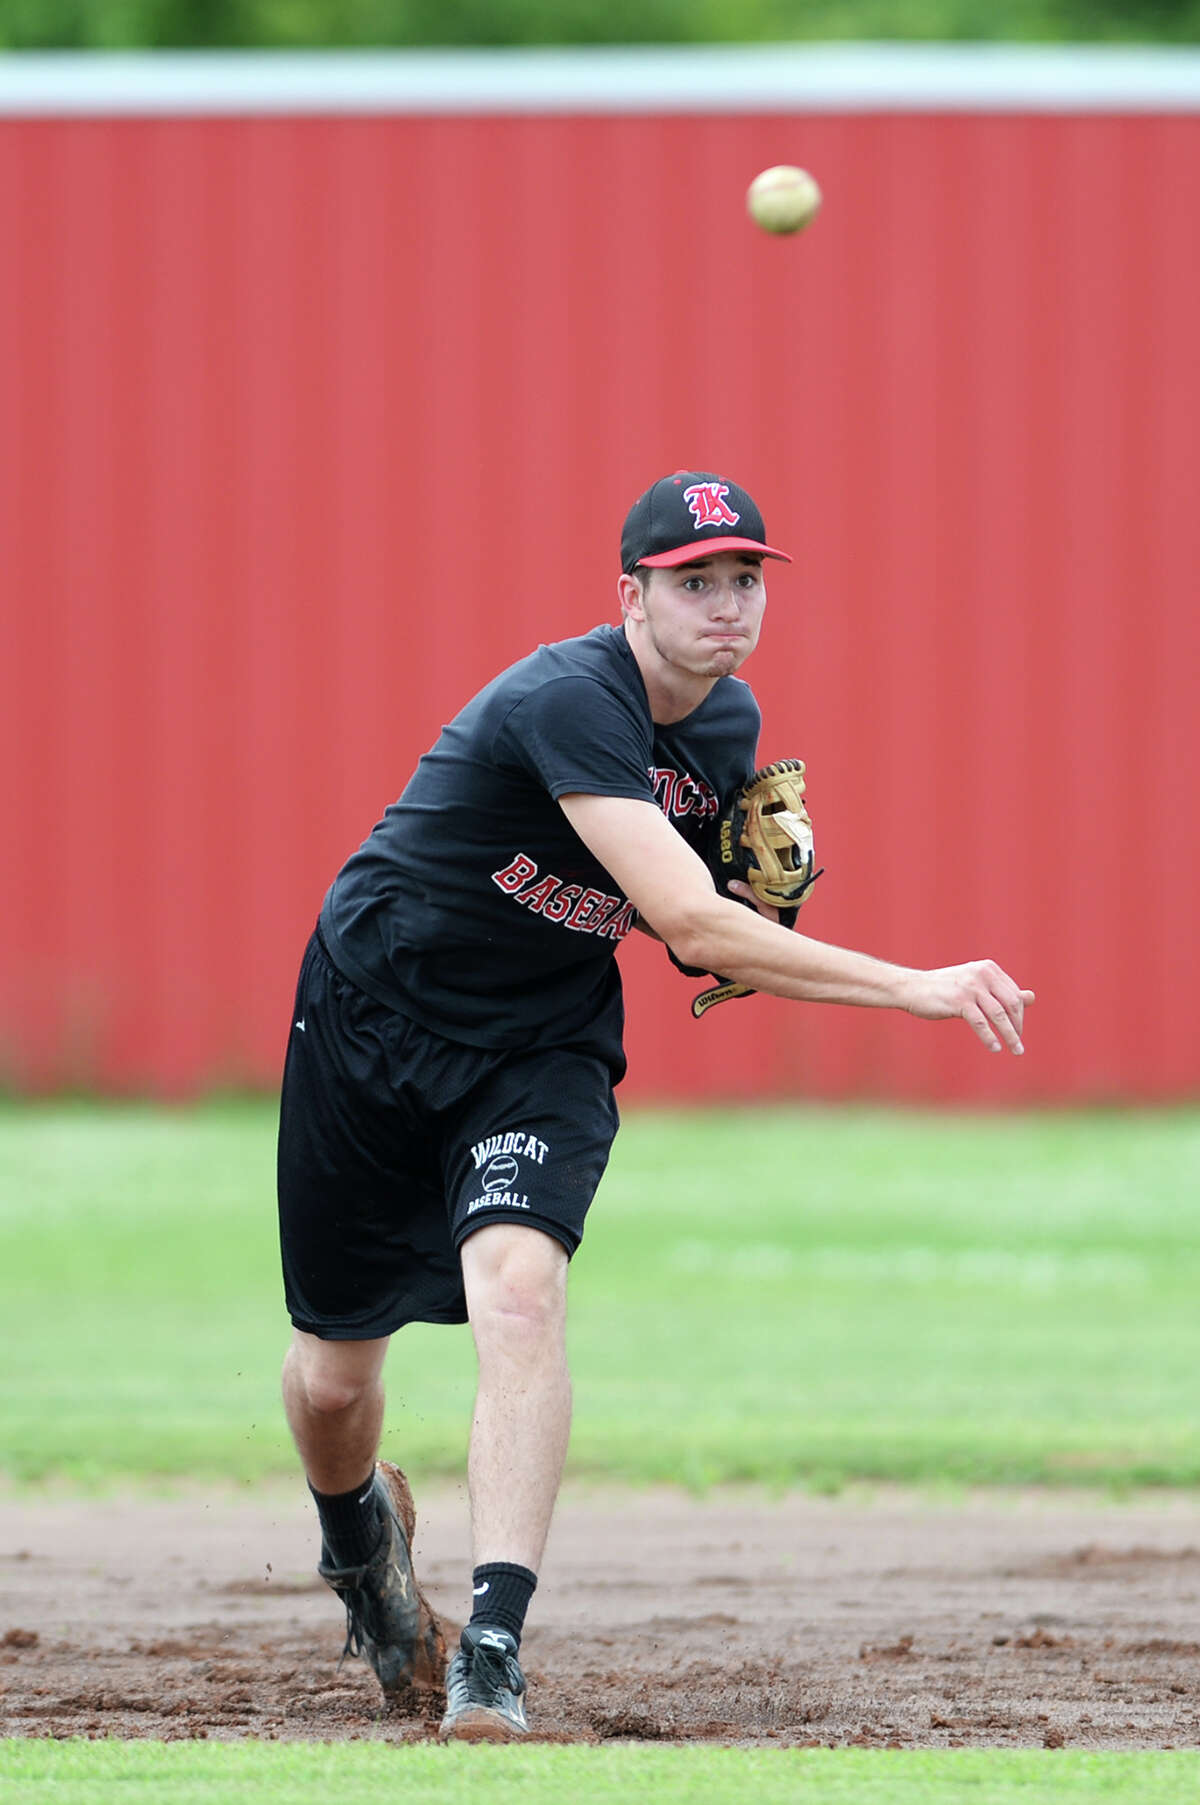 Kevin Self throws to a teammate during practice on Tuesday afternoon. The Kirbyville High School baseball team practiced Tuesday in preparation for the regional quarterfinals against Central Heights High School. Photo taken Tuesday 5/13/14 Jake Daniels/@JakeD_in_SETX